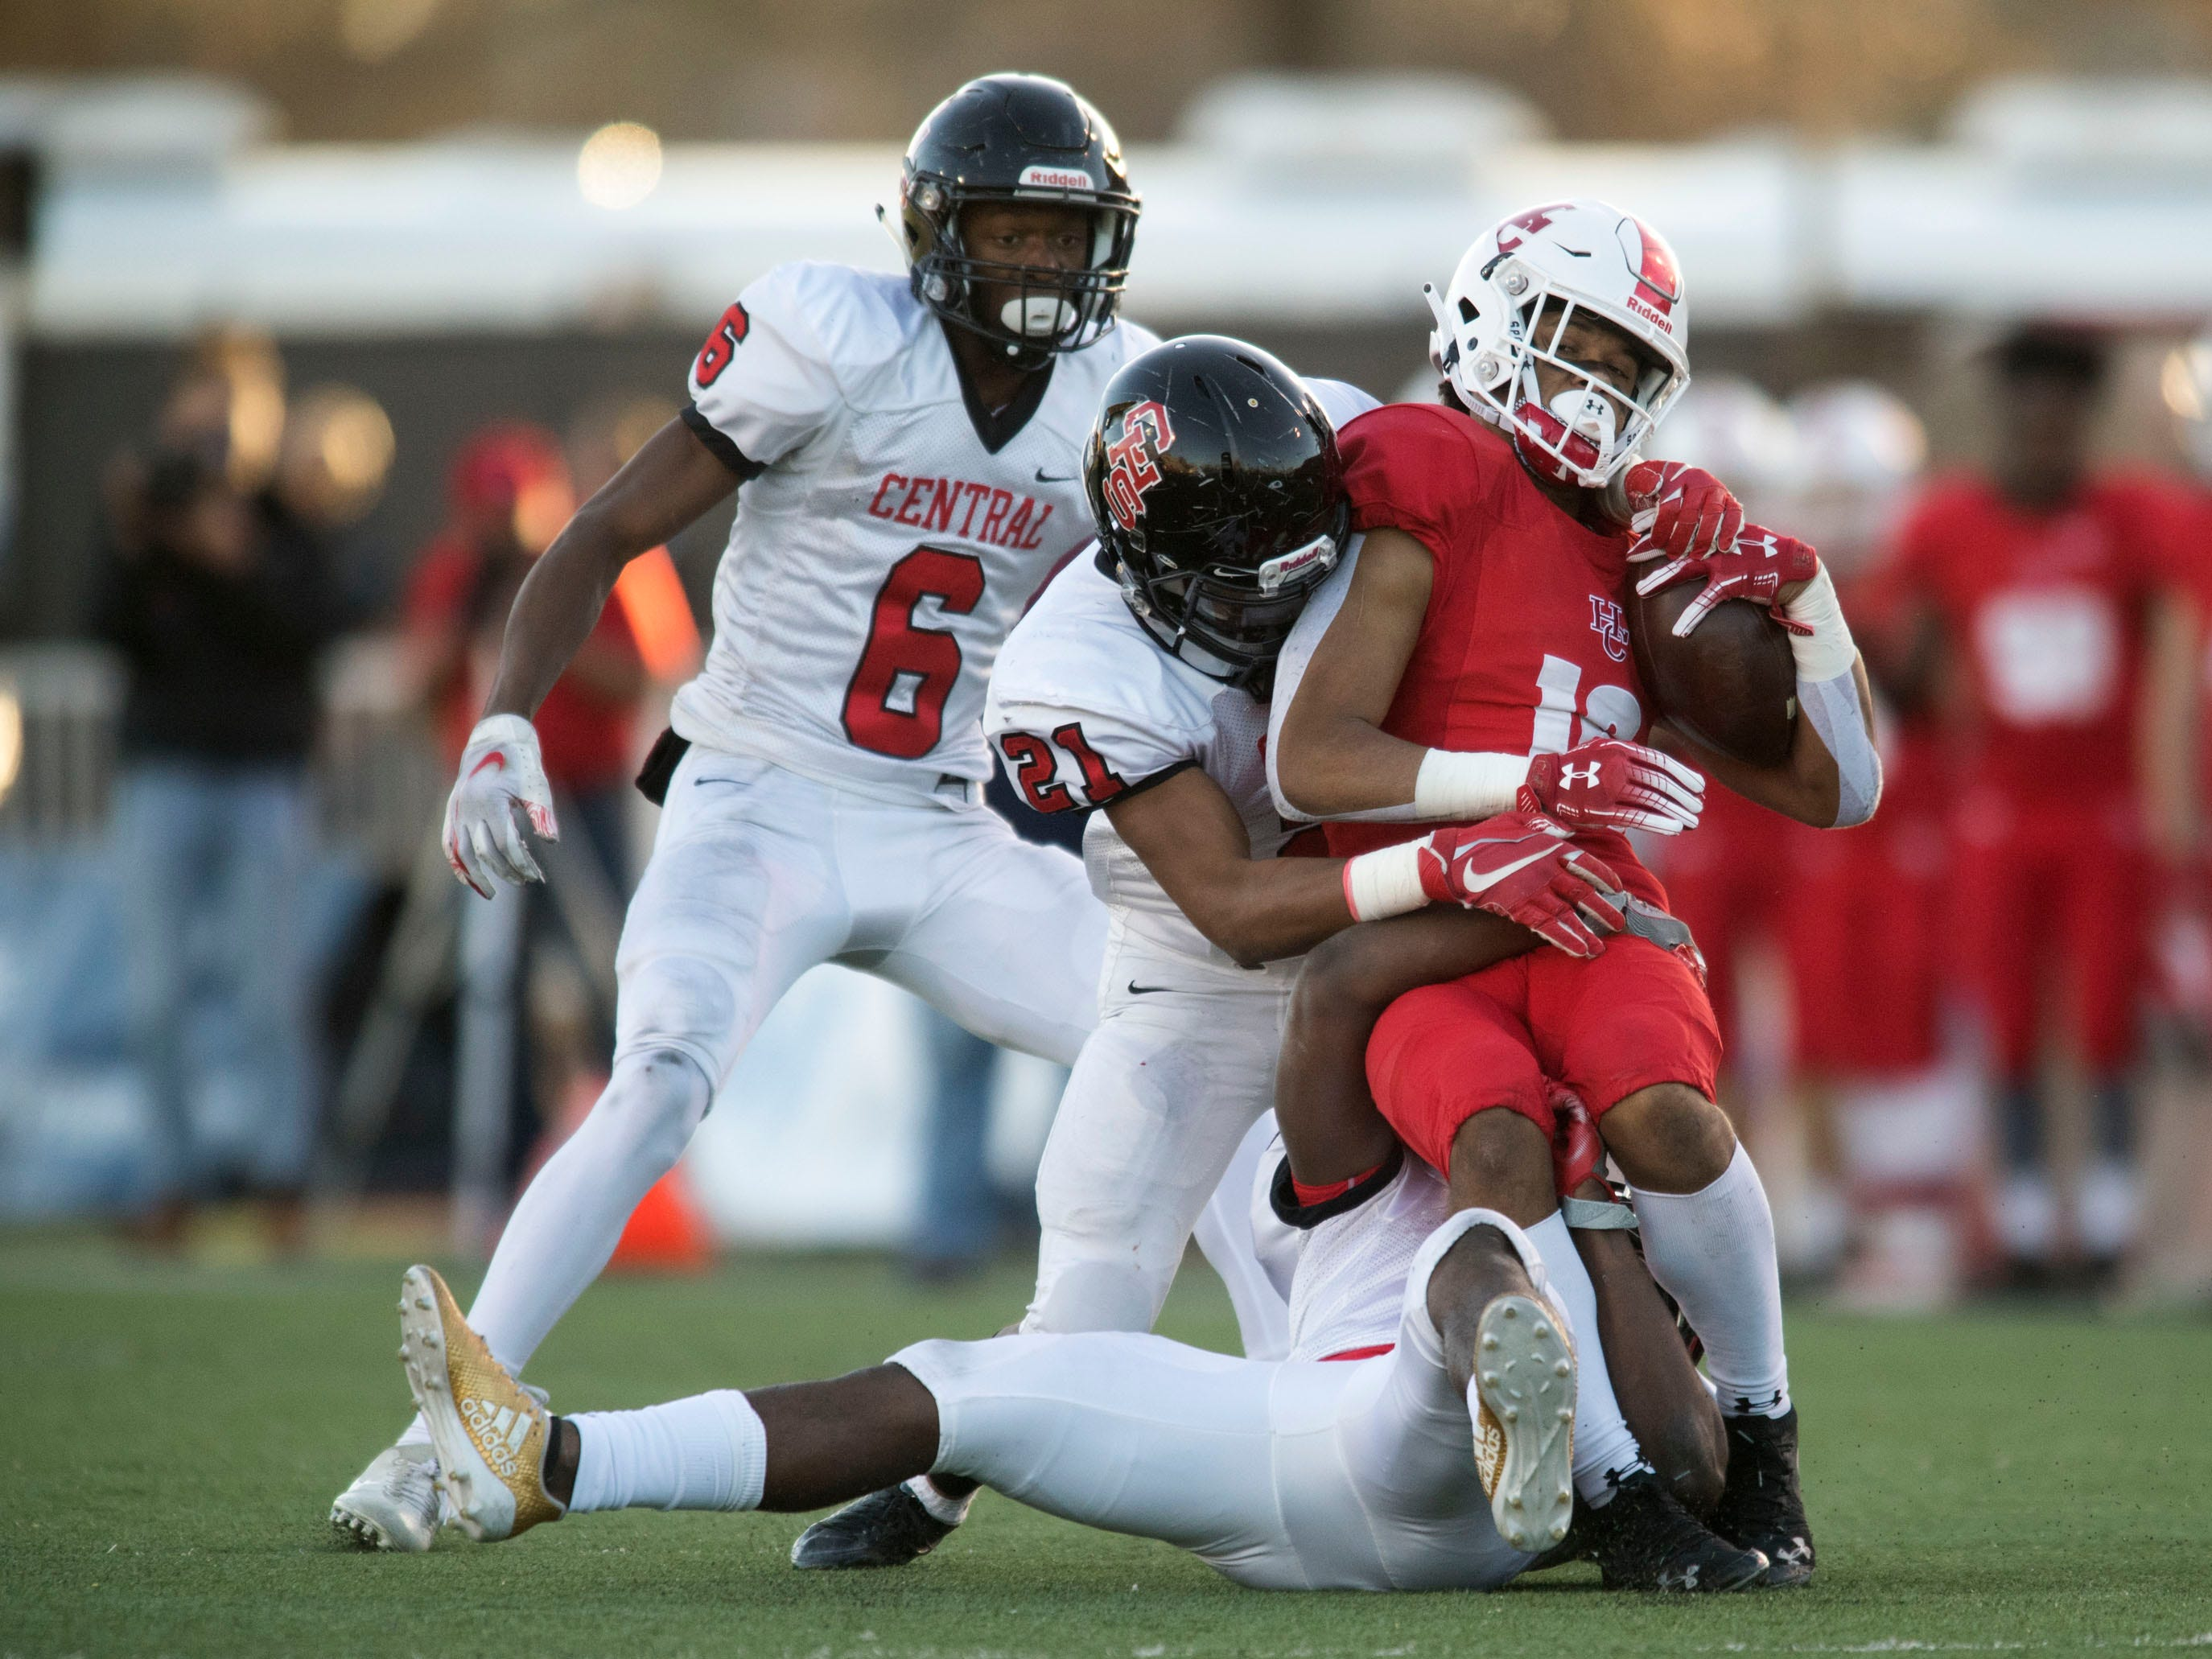 Henry County's Ethan Thompson (16) is taken down by the Knoxville Central defense in the Class 5A BlueCross Bowl at Tucker Stadium on Sunday, December 2, 2018.